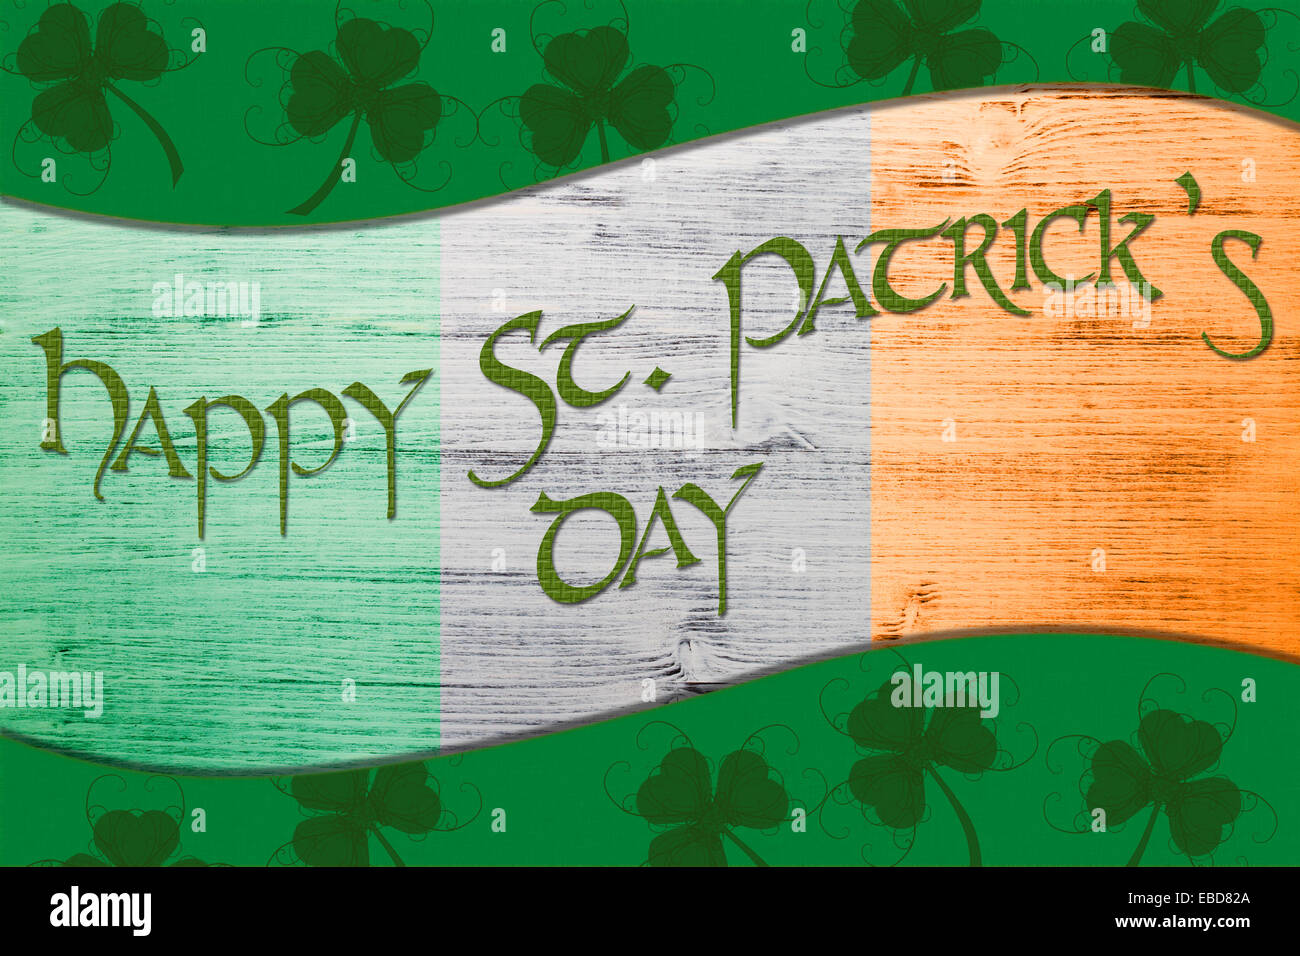 Green St. Patrick's Day greeting card with clover, border and Text - Stock Image